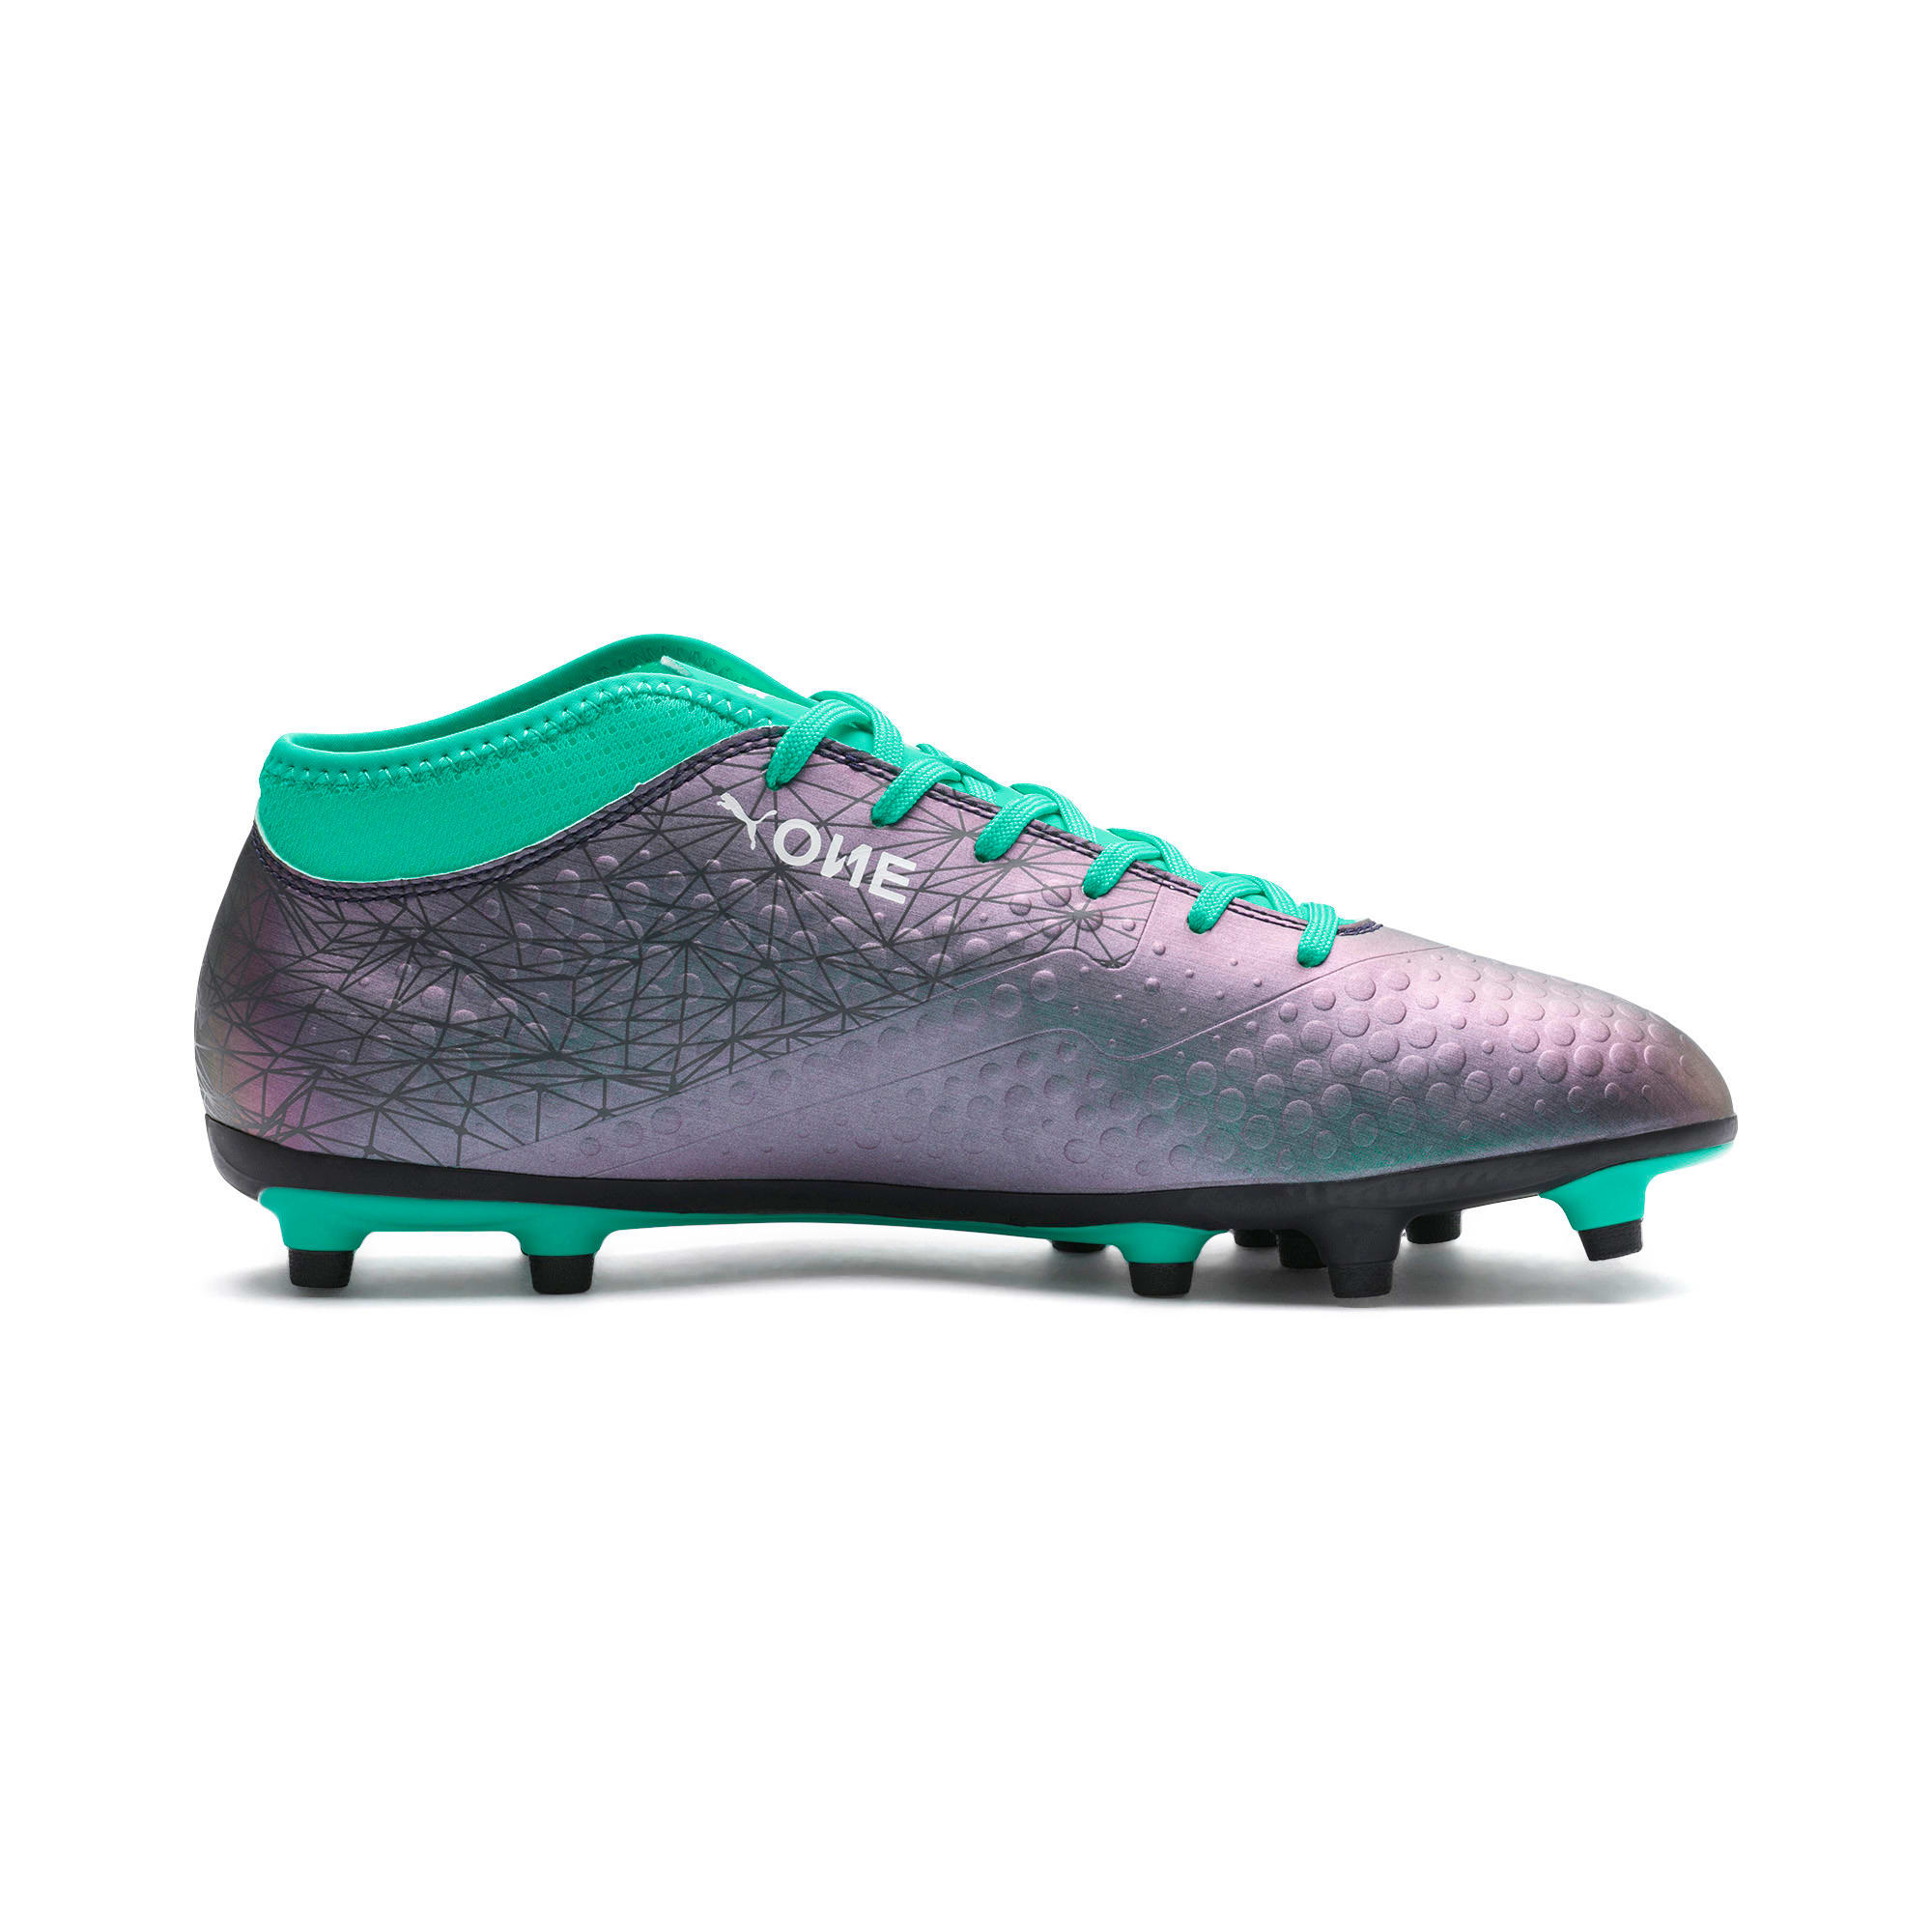 Thumbnail 5 of PUMA ONE 4 IL Syn FG Color Shift-Biscay, Col Shift-Green-White-Black, medium-IND